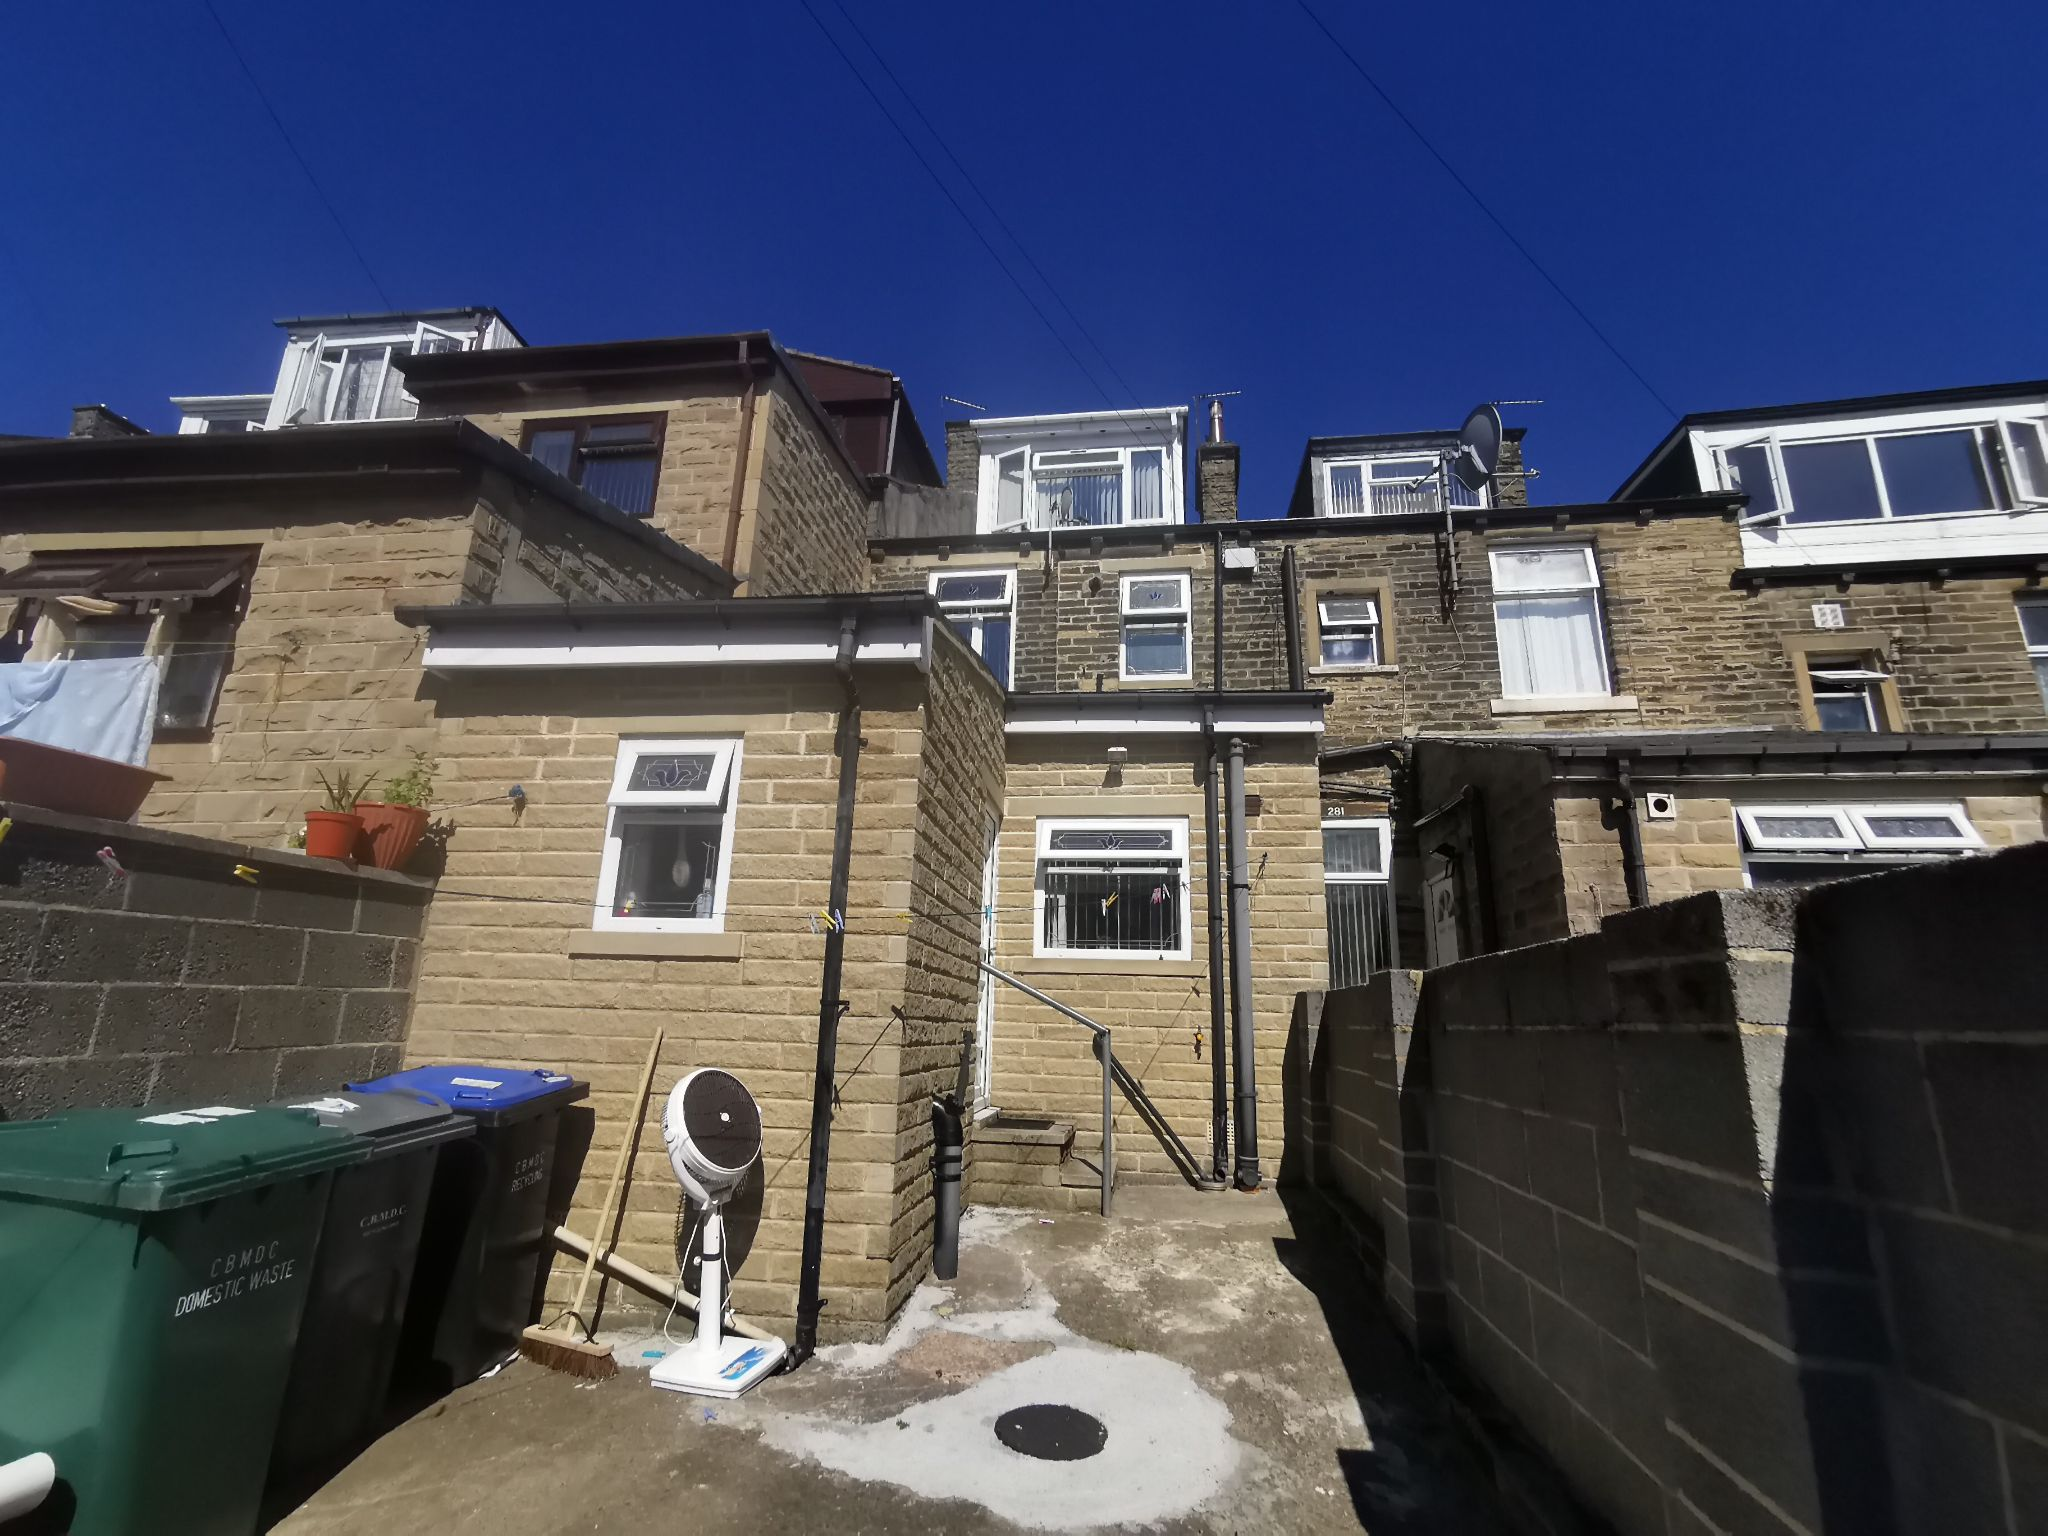 4 bedroom mid terraced house For Sale in Bradford - Photograph 14.